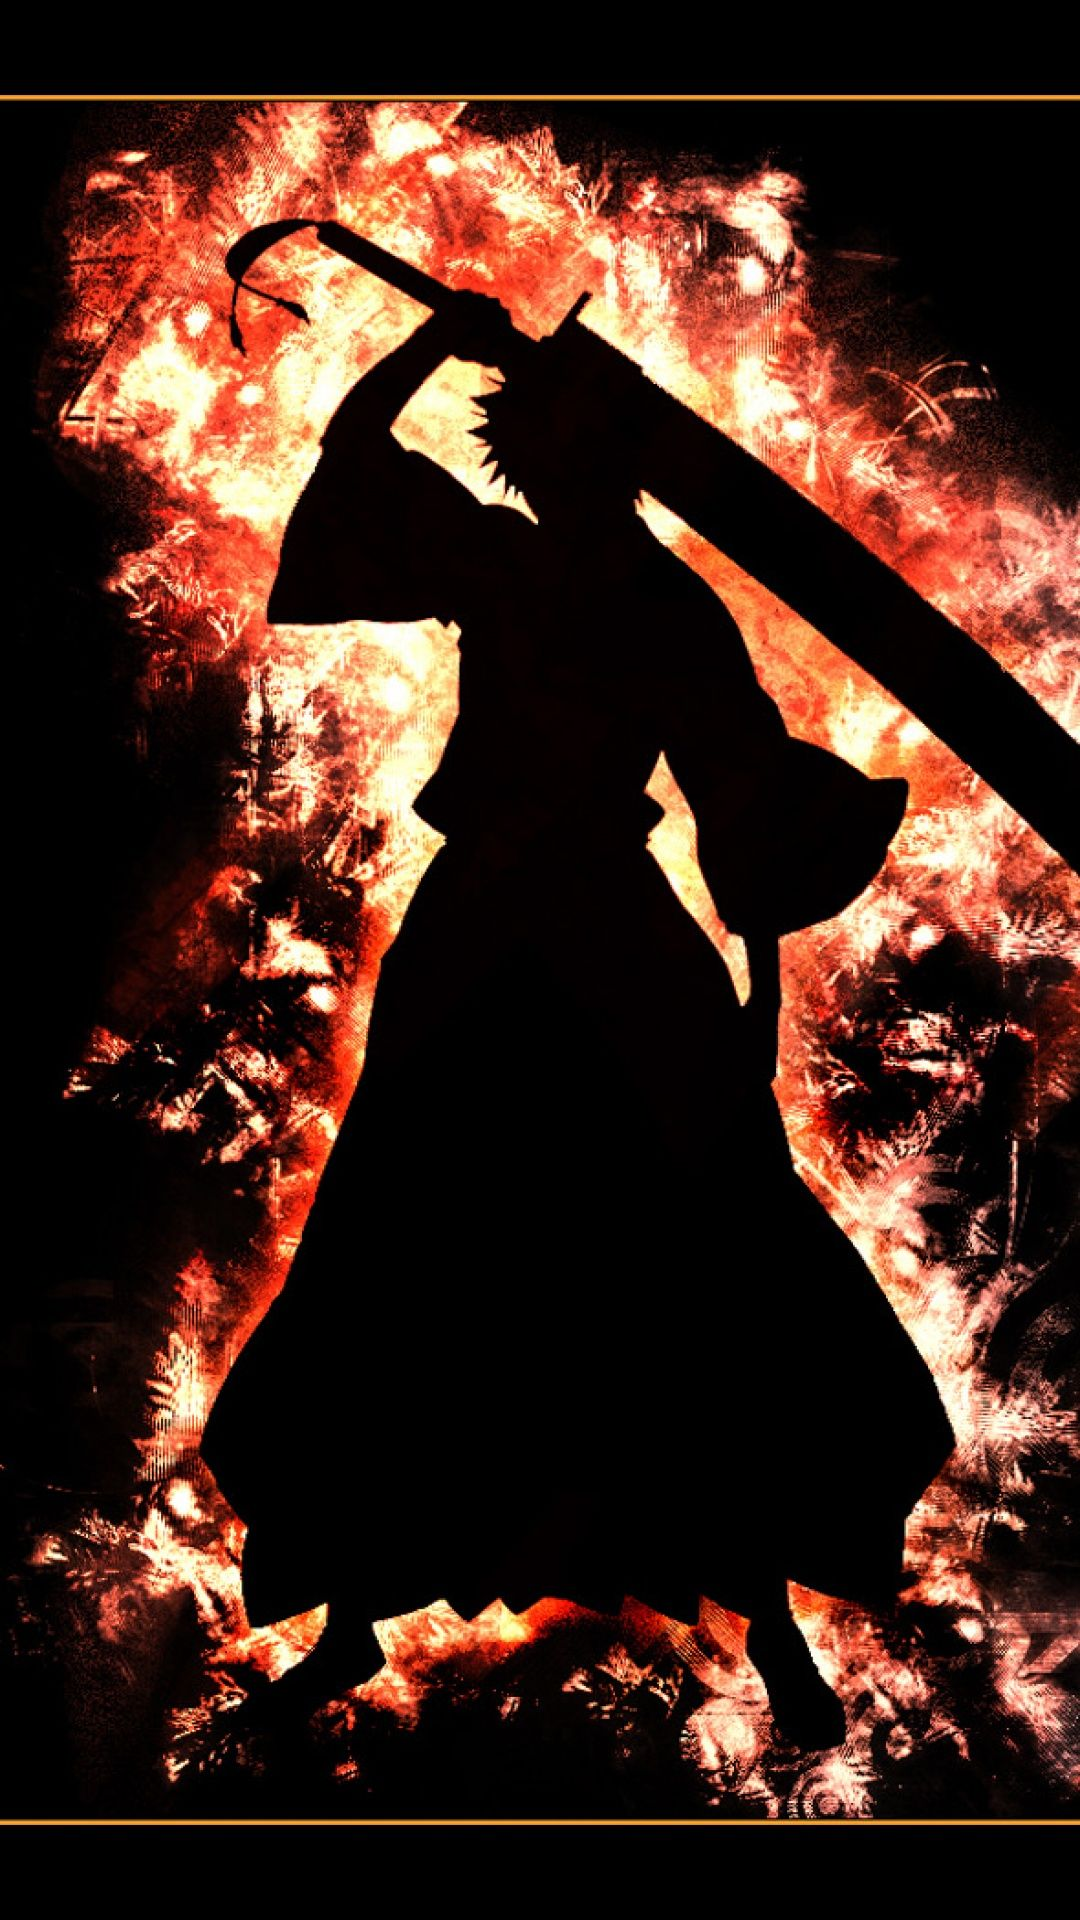 Hd Bleach Iphone Wallpaper Anime Wallpaper Iphone Bleach